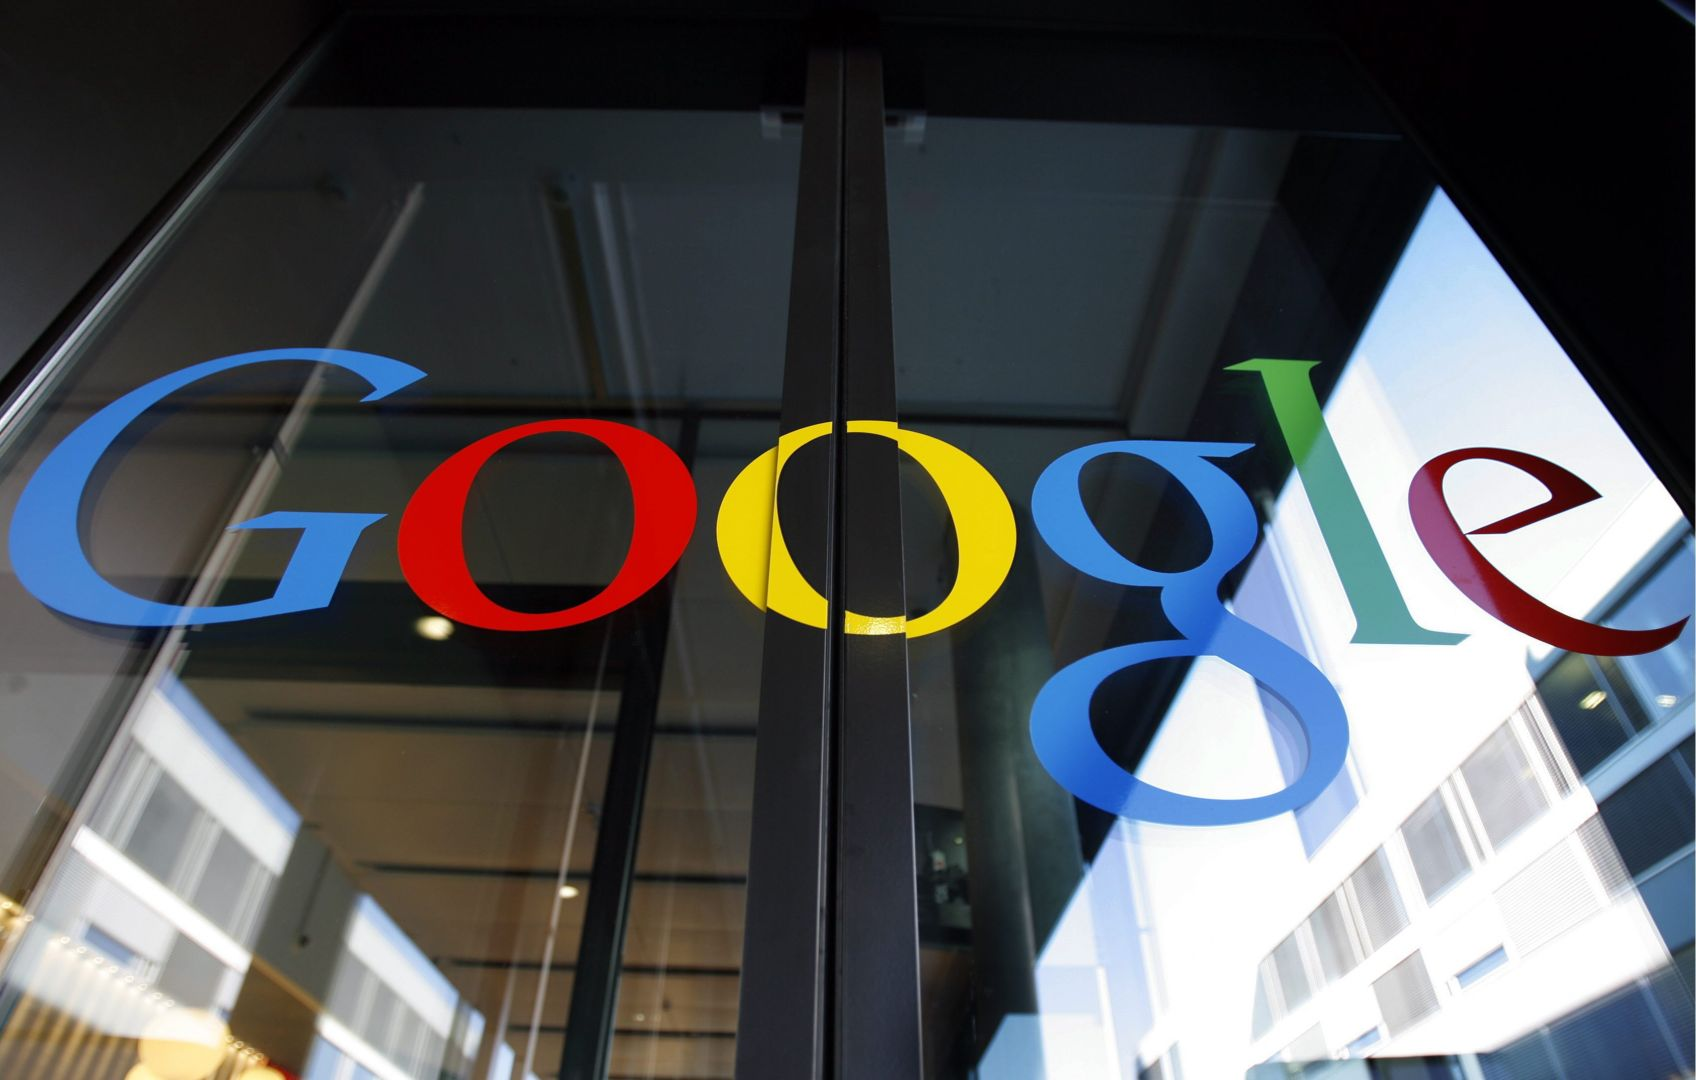 Google faces antitrust investigation by 50 attorneys general